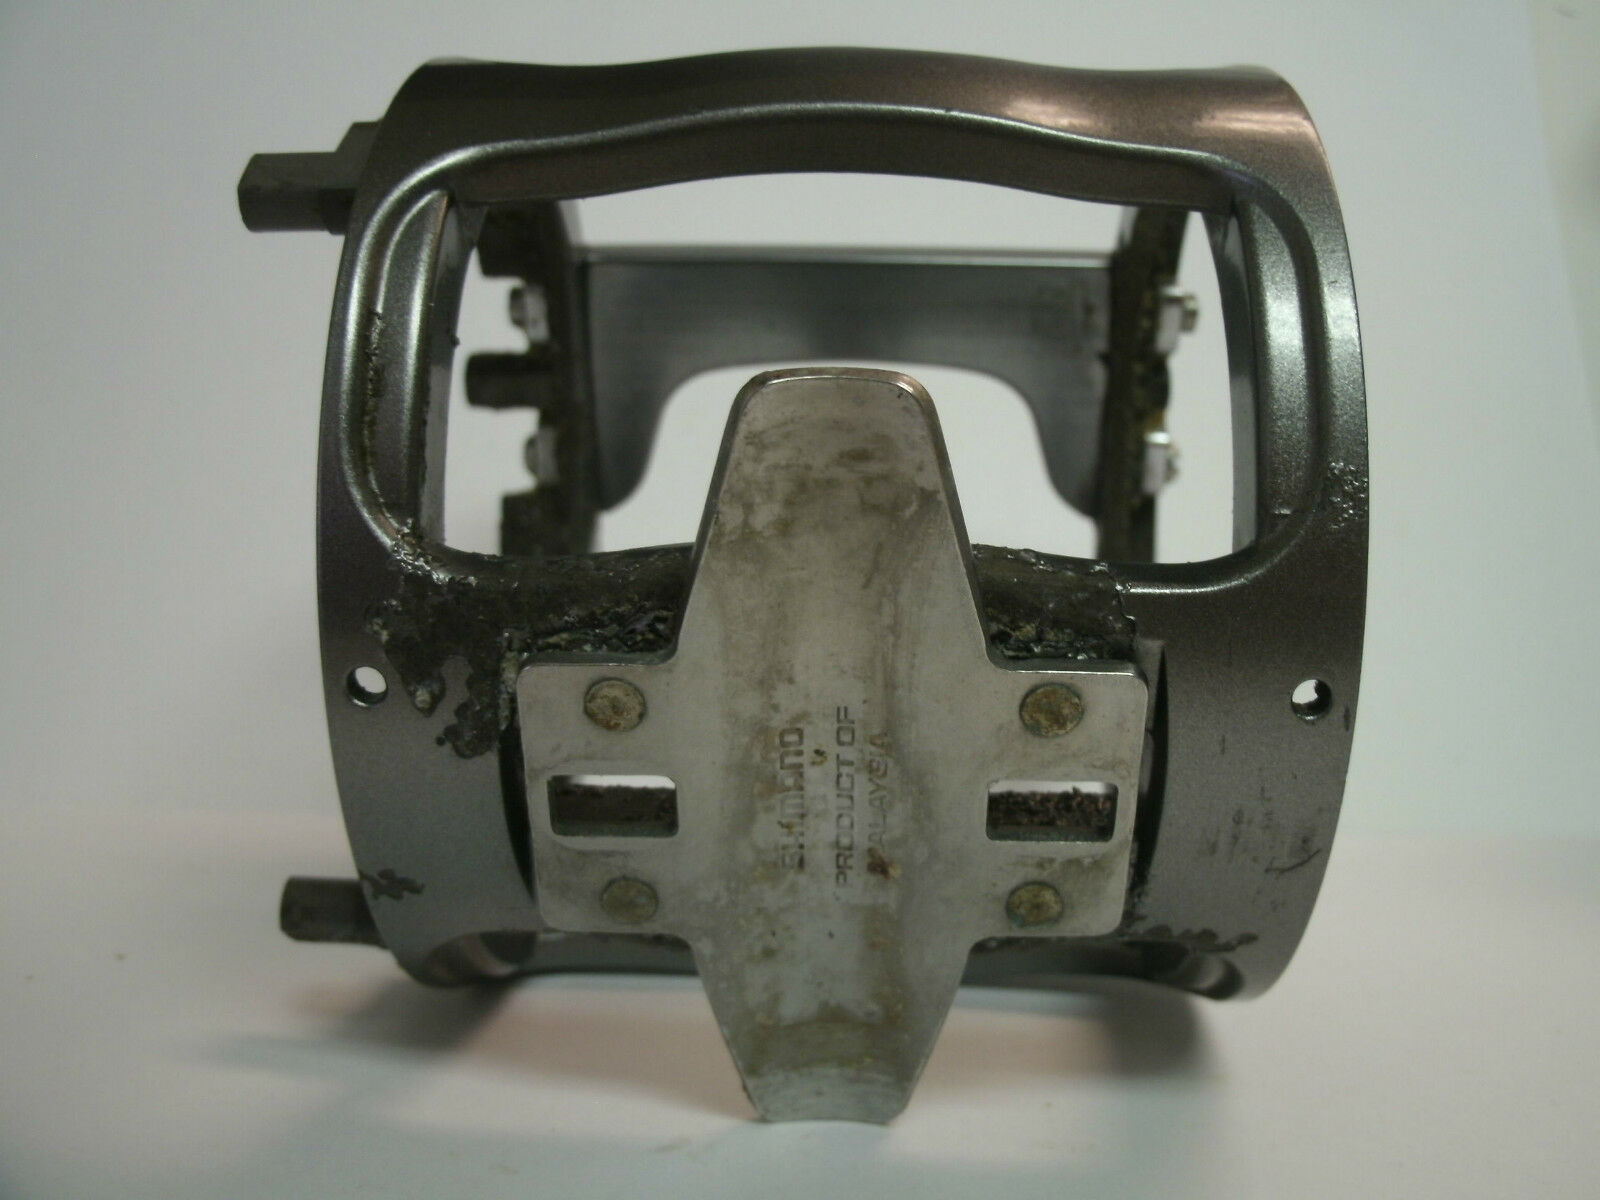 USED SHIMANO REEL PART - Tyrnos 30 Conventional Conventional 30 - Frame - Paint Loss - Lot  X2 2cac30